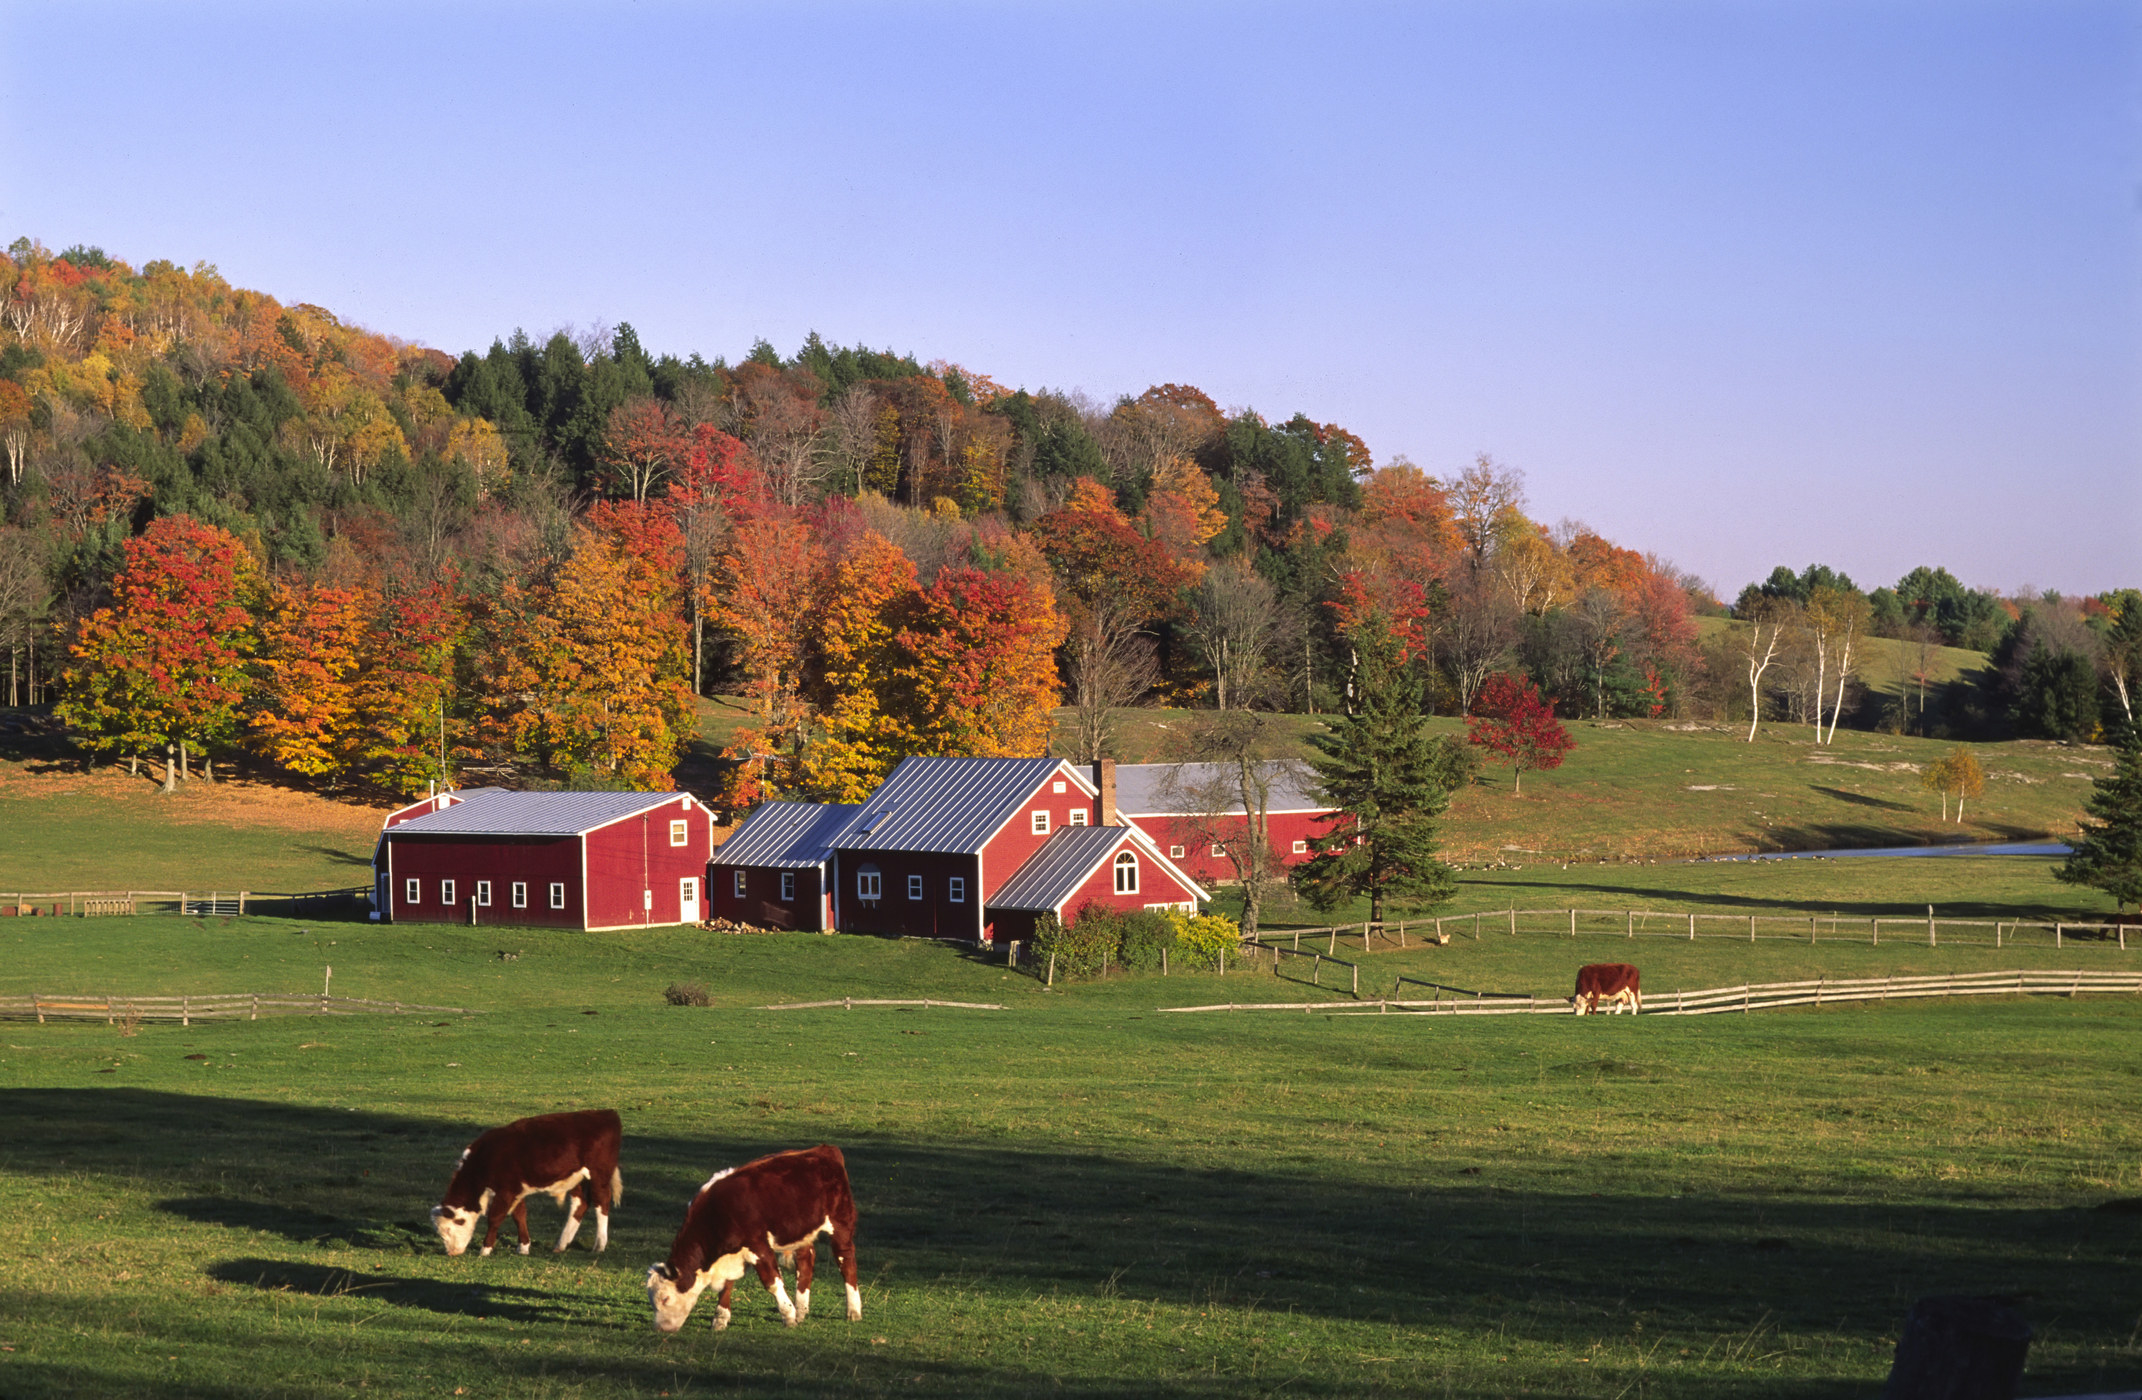 A red barn sits on green grass with autumnal trees in the background and two cows grazing in the foreground